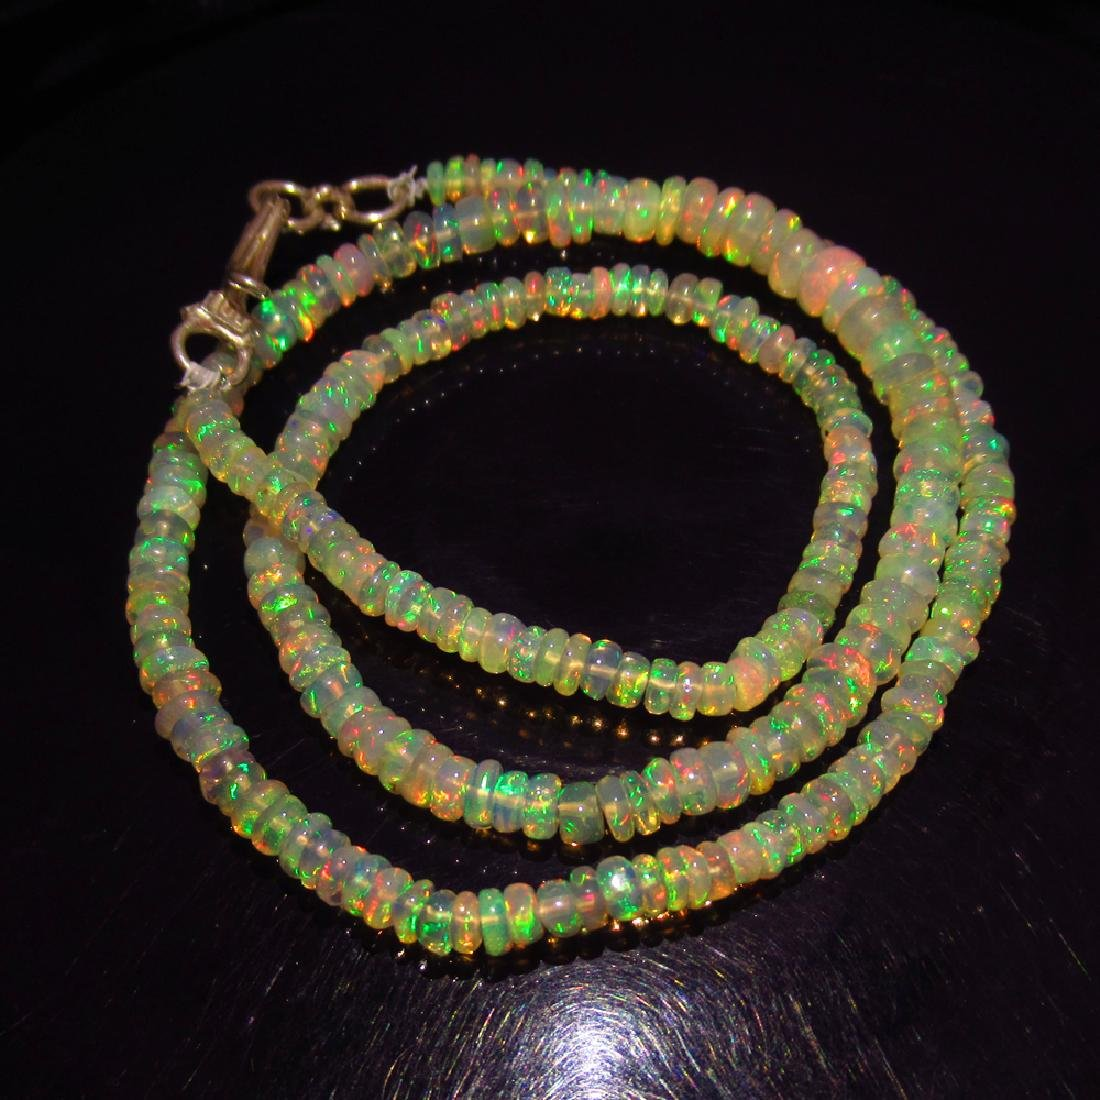 39.75 Ct Genuine 245 Ethiopian Opal Beads Pure Silver